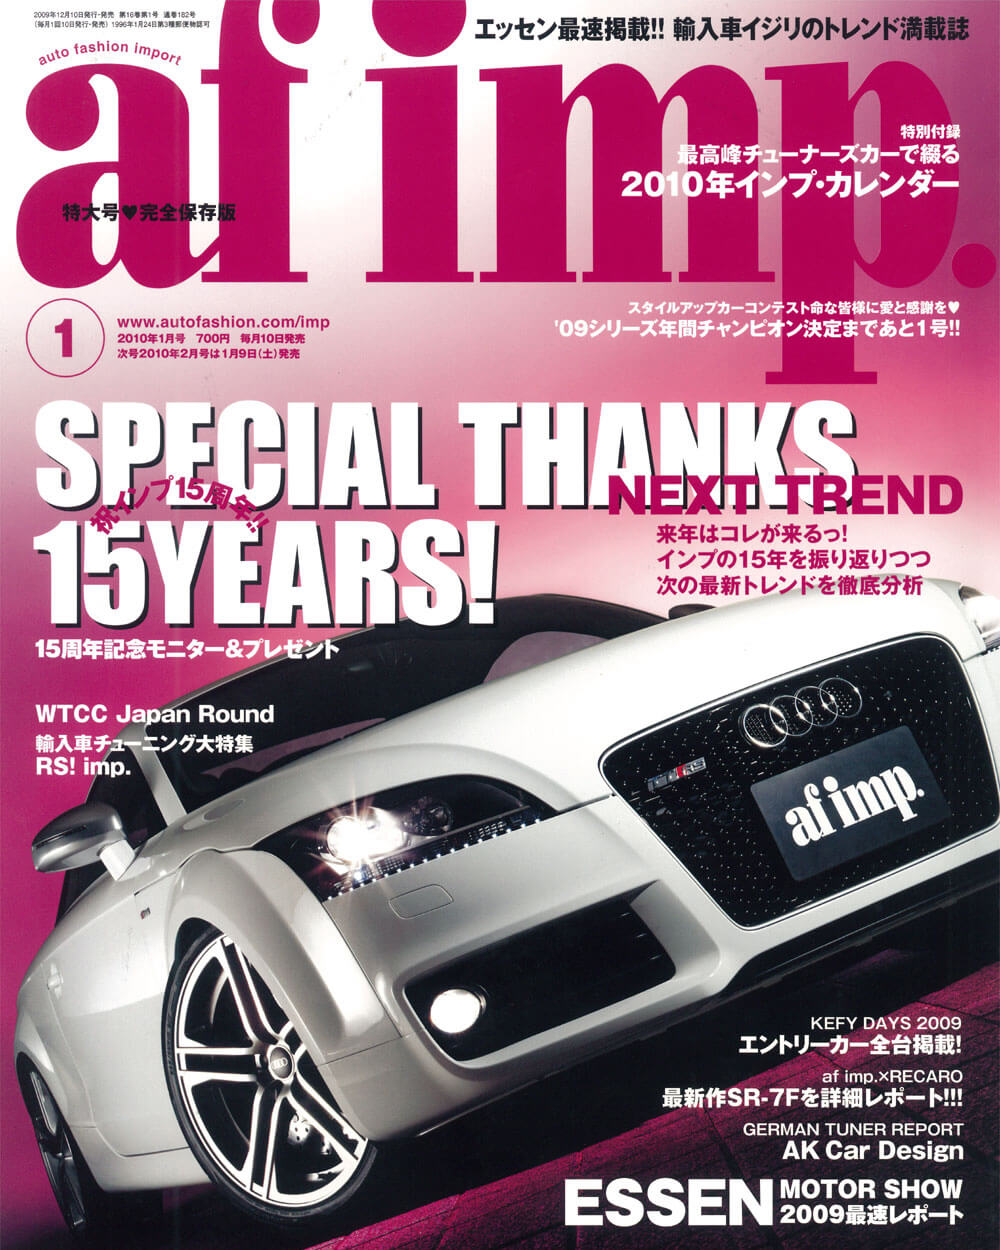 af imp Jan. issue